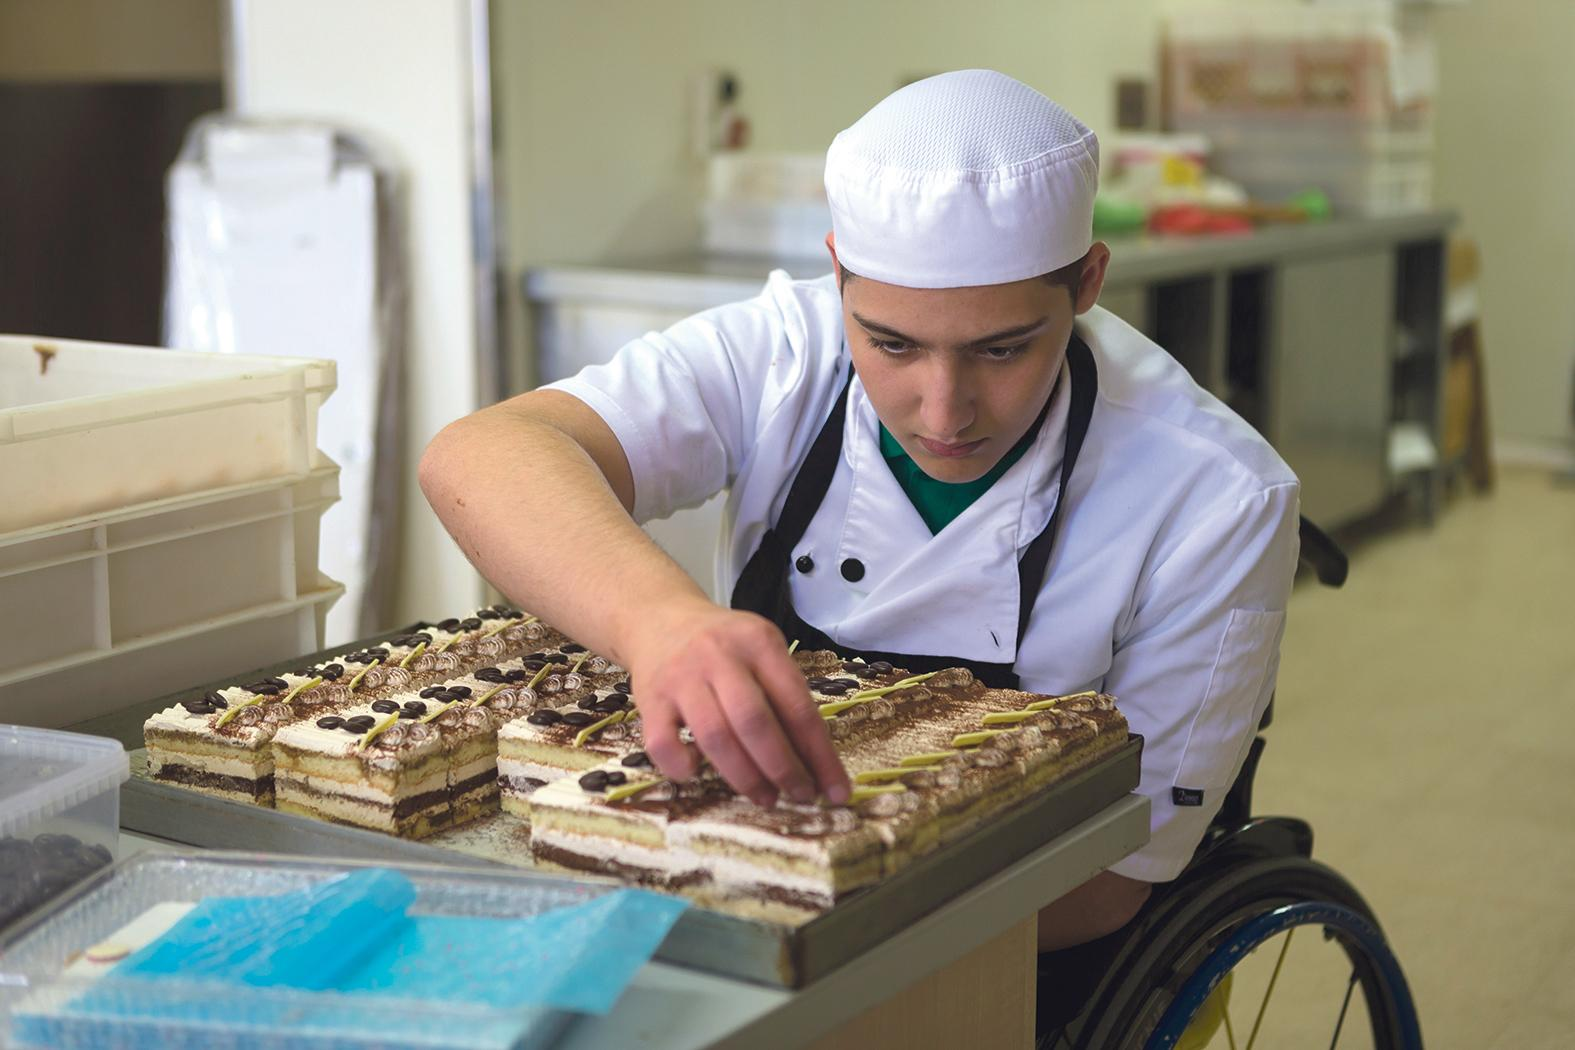 Rocco Gauci is currently studying at ITS to become a chef.